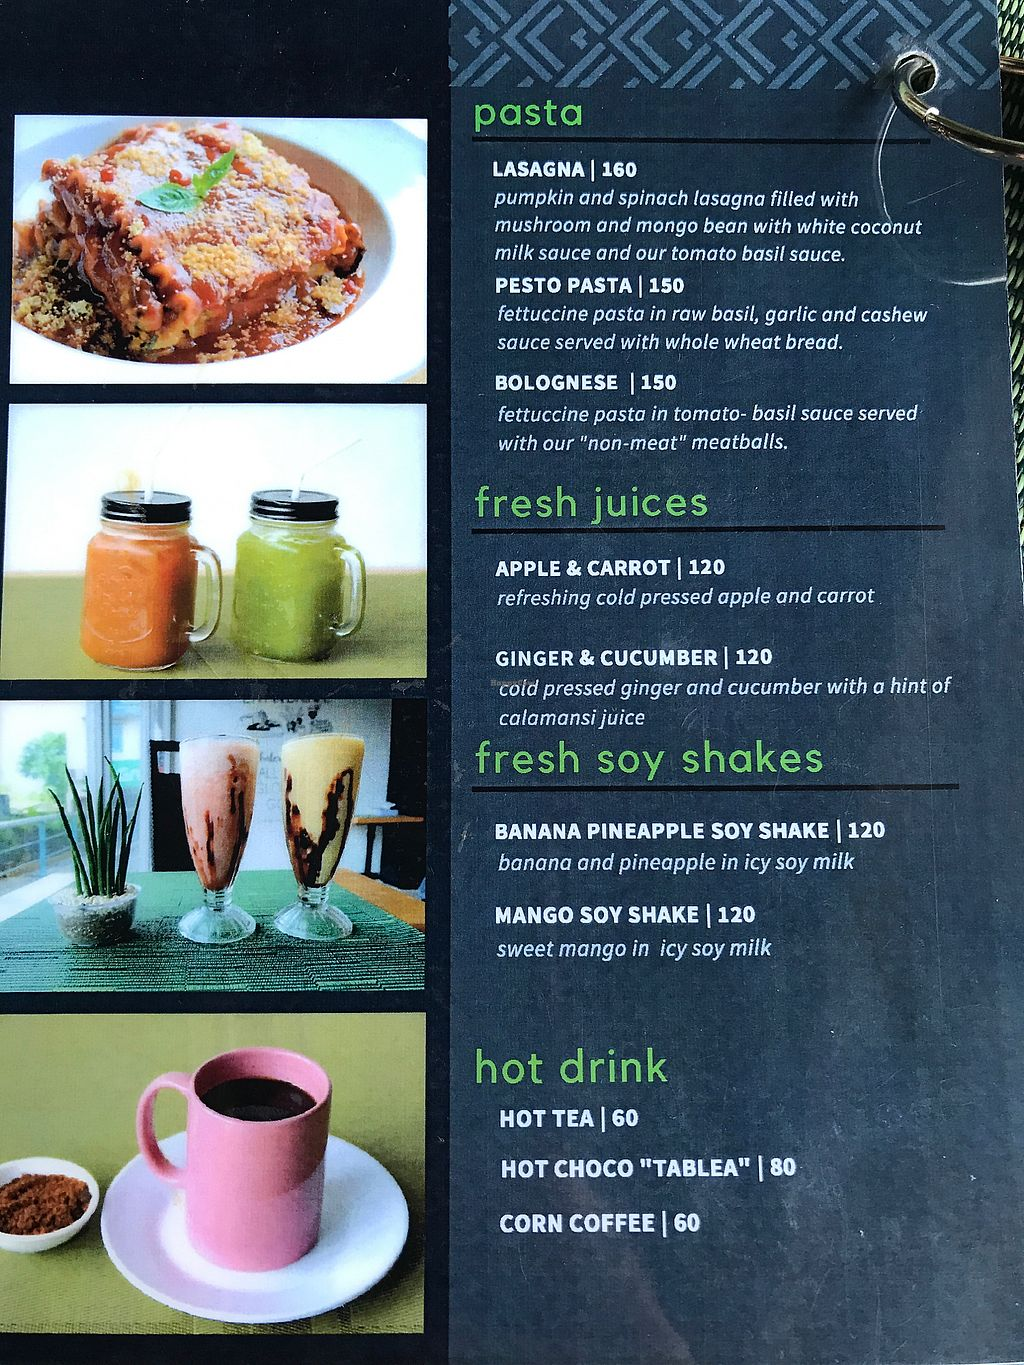 """Photo of Lun-Haw Vegan Cafe  by <a href=""""/members/profile/CharlieDrew"""">CharlieDrew</a> <br/>Menu page 3 <br/> February 18, 2018  - <a href='/contact/abuse/image/86953/360757'>Report</a>"""